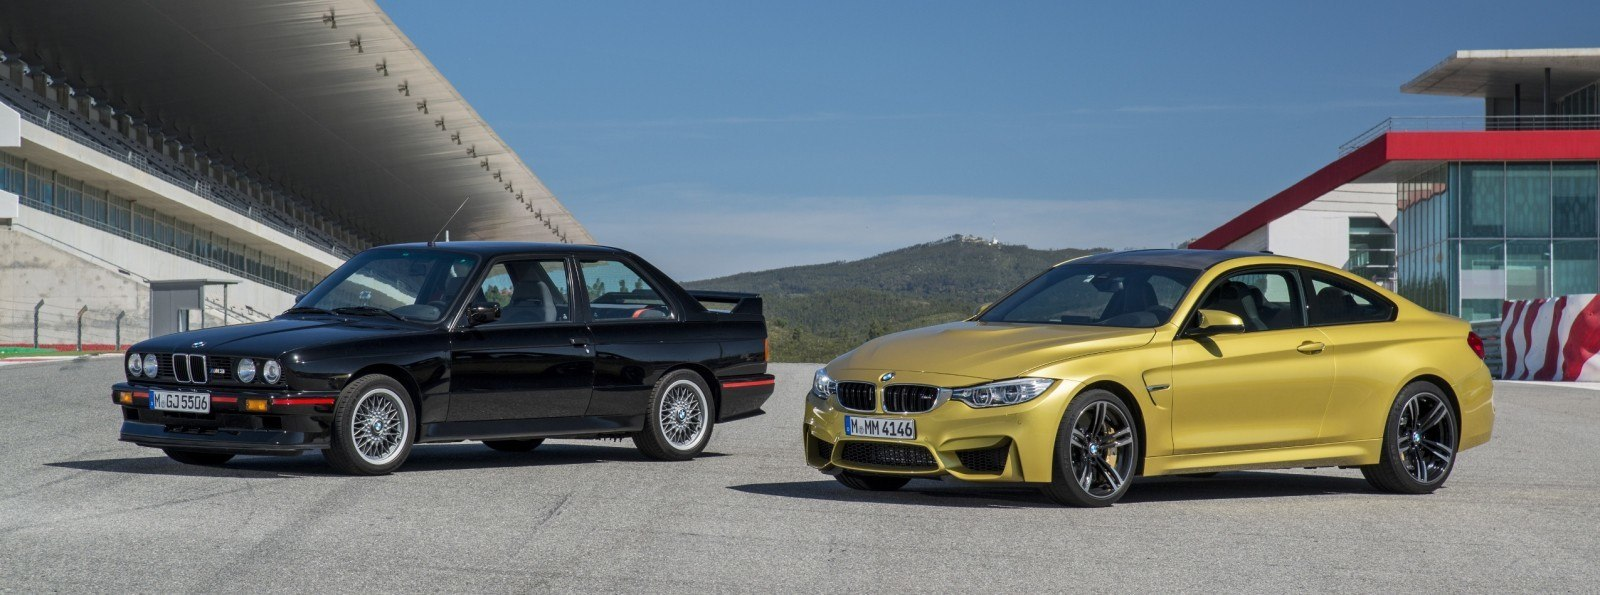 2015 BMW M3 and M4 Meet The Legacy in 52 New Photos With E30 Sport Evolution, E36 M3 Sedan, E46 and E90 18